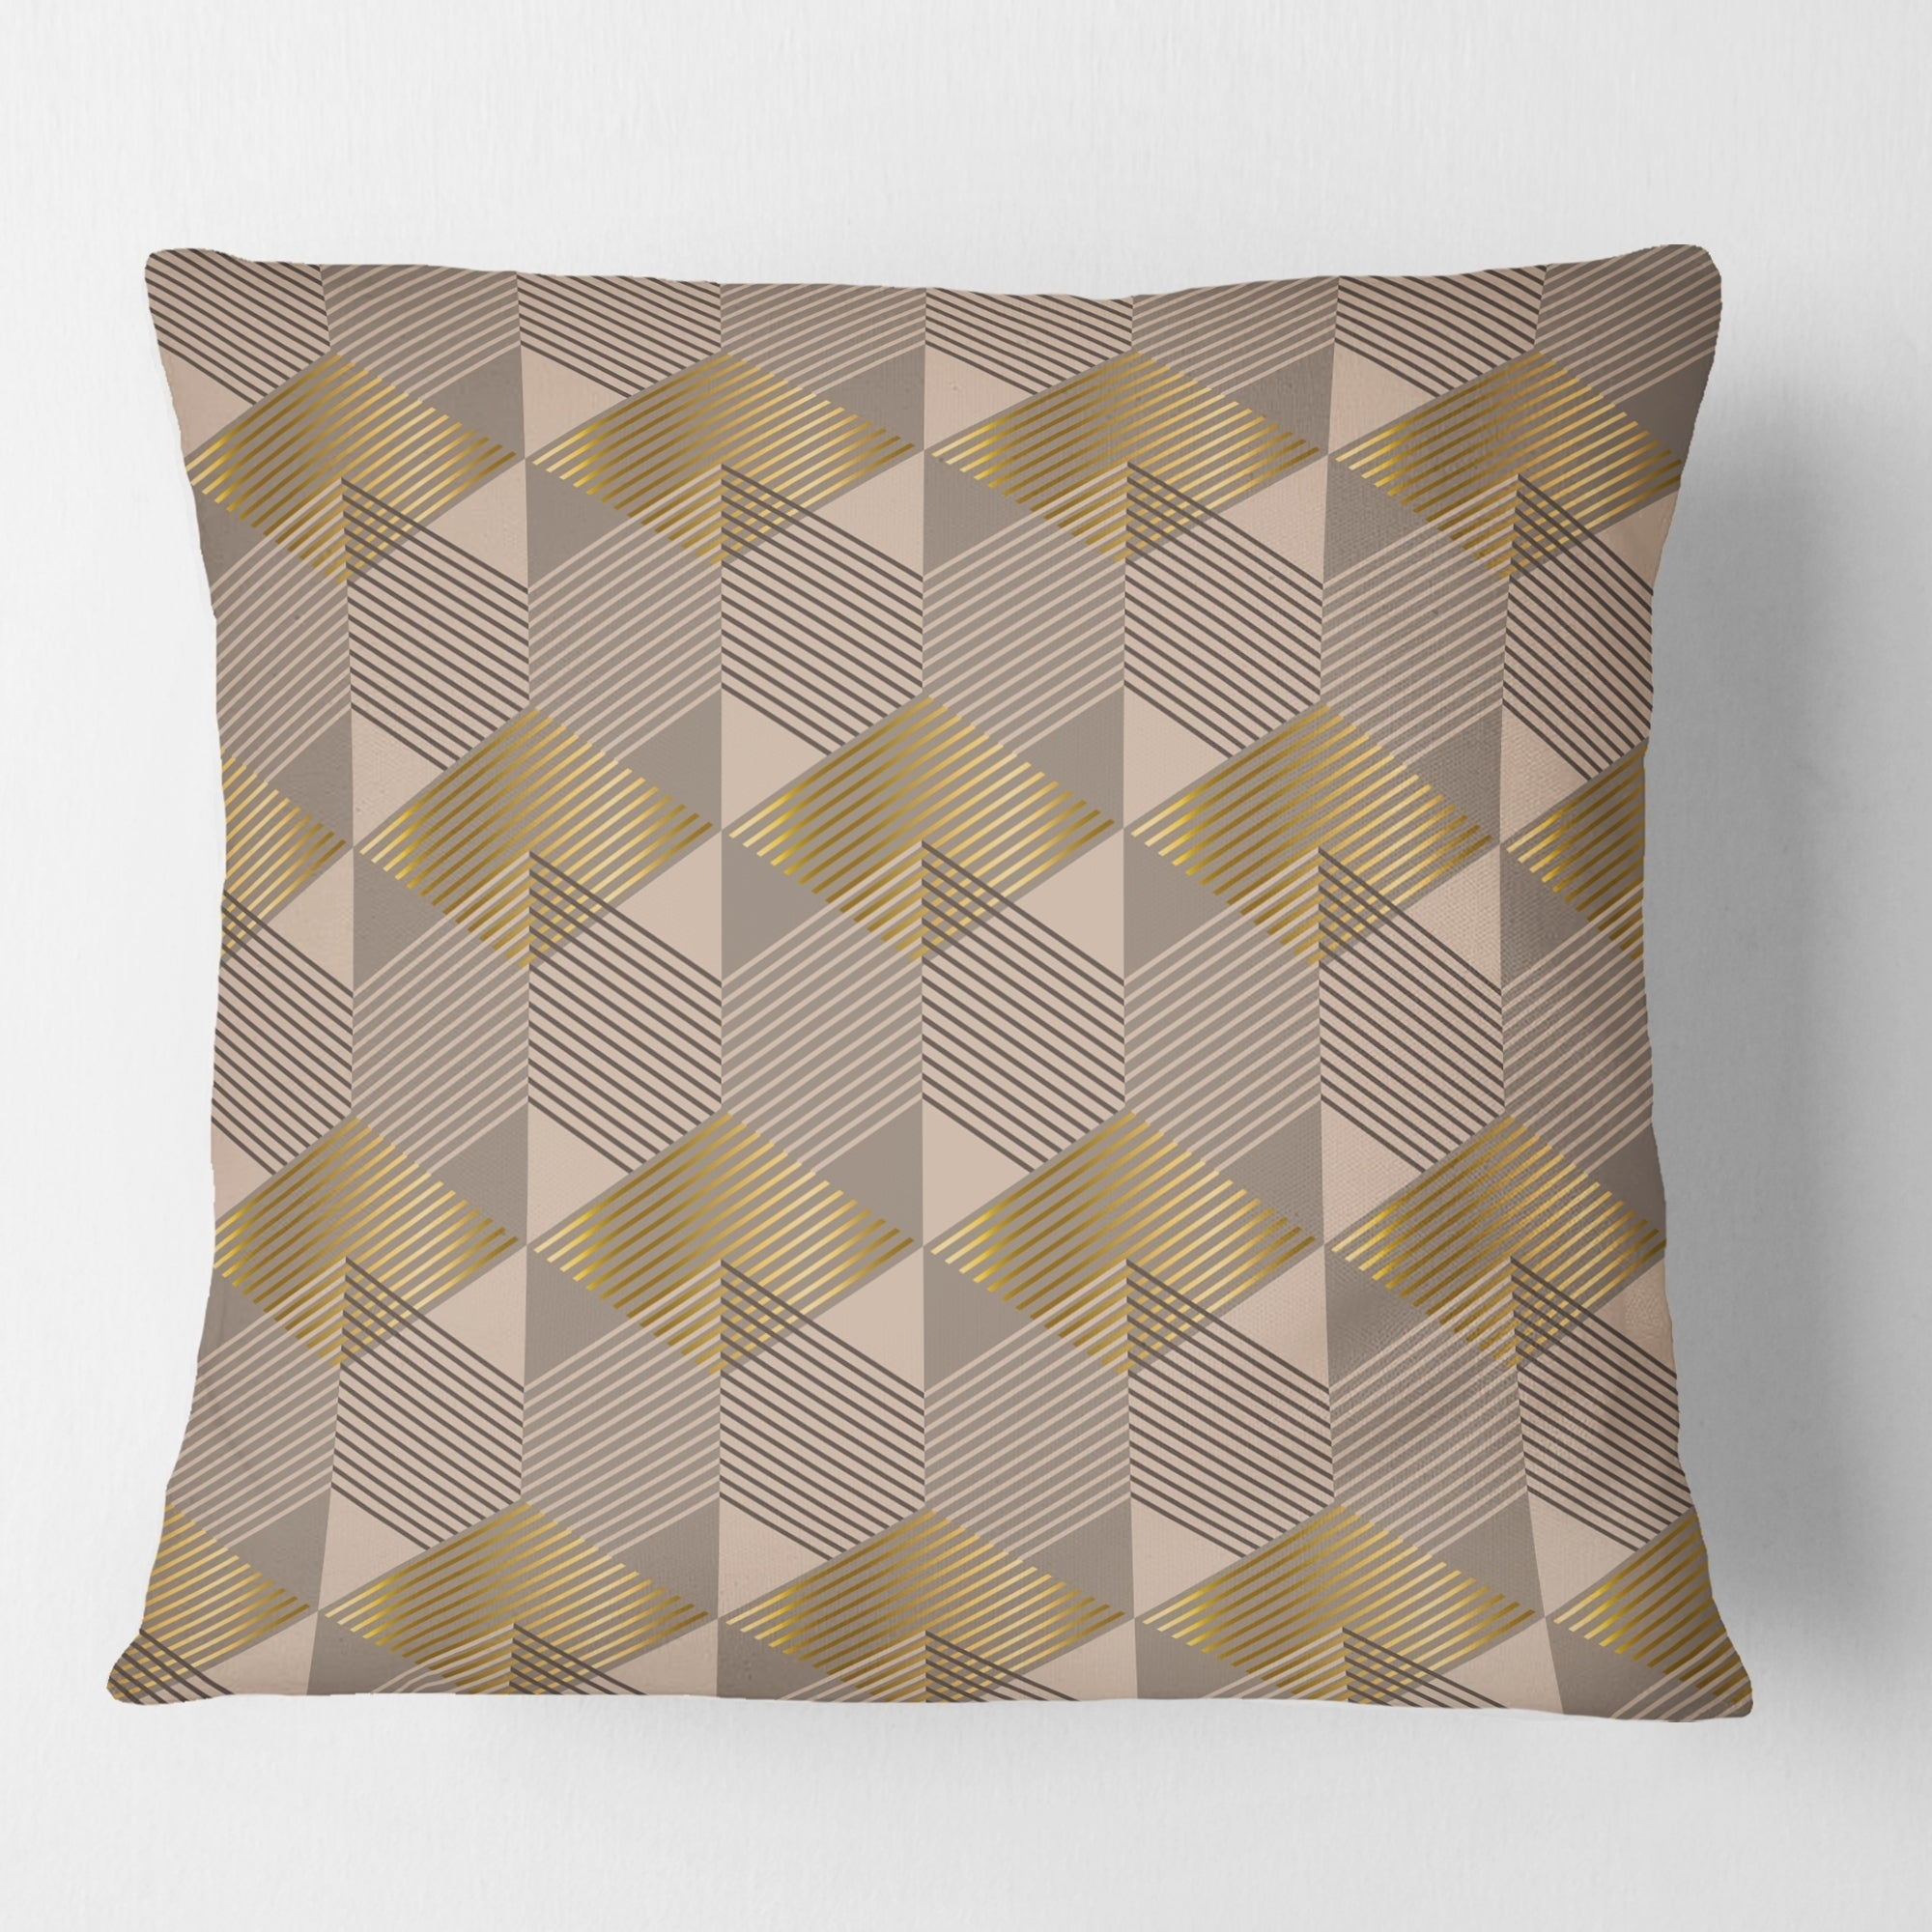 Designart Retro Square Design Vi Mid Century Modern Throw Pillow Overstock 29063900